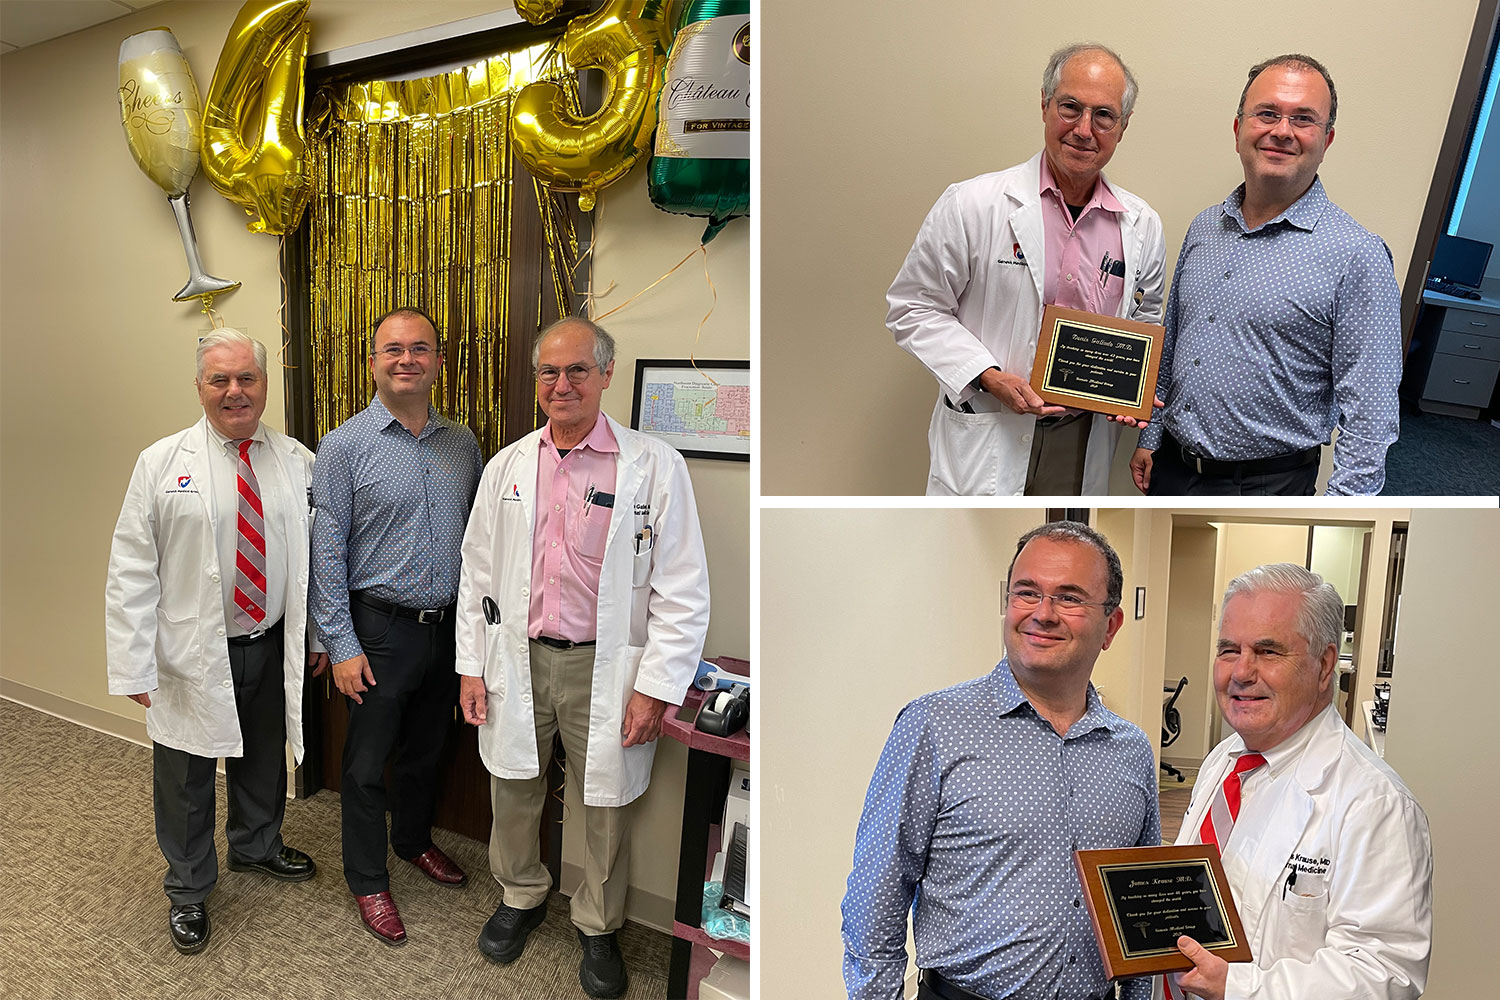 Celebrating Dr Krause who has dedicated 46 years to practice medicine and Dr Galindo who has been practicing for 43 years